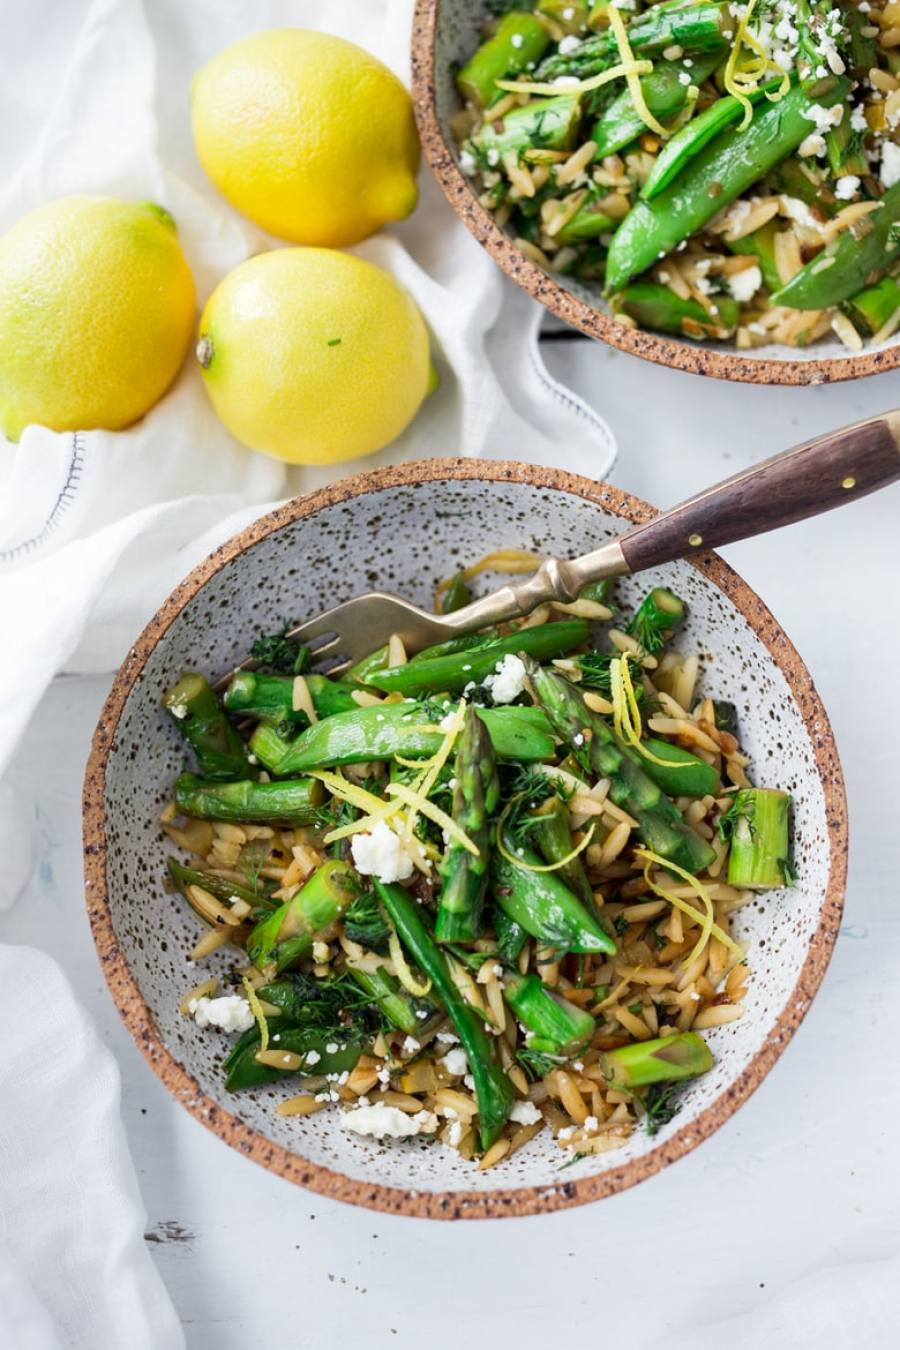 Spring Orzo with Asparagus, Lemon and Dill